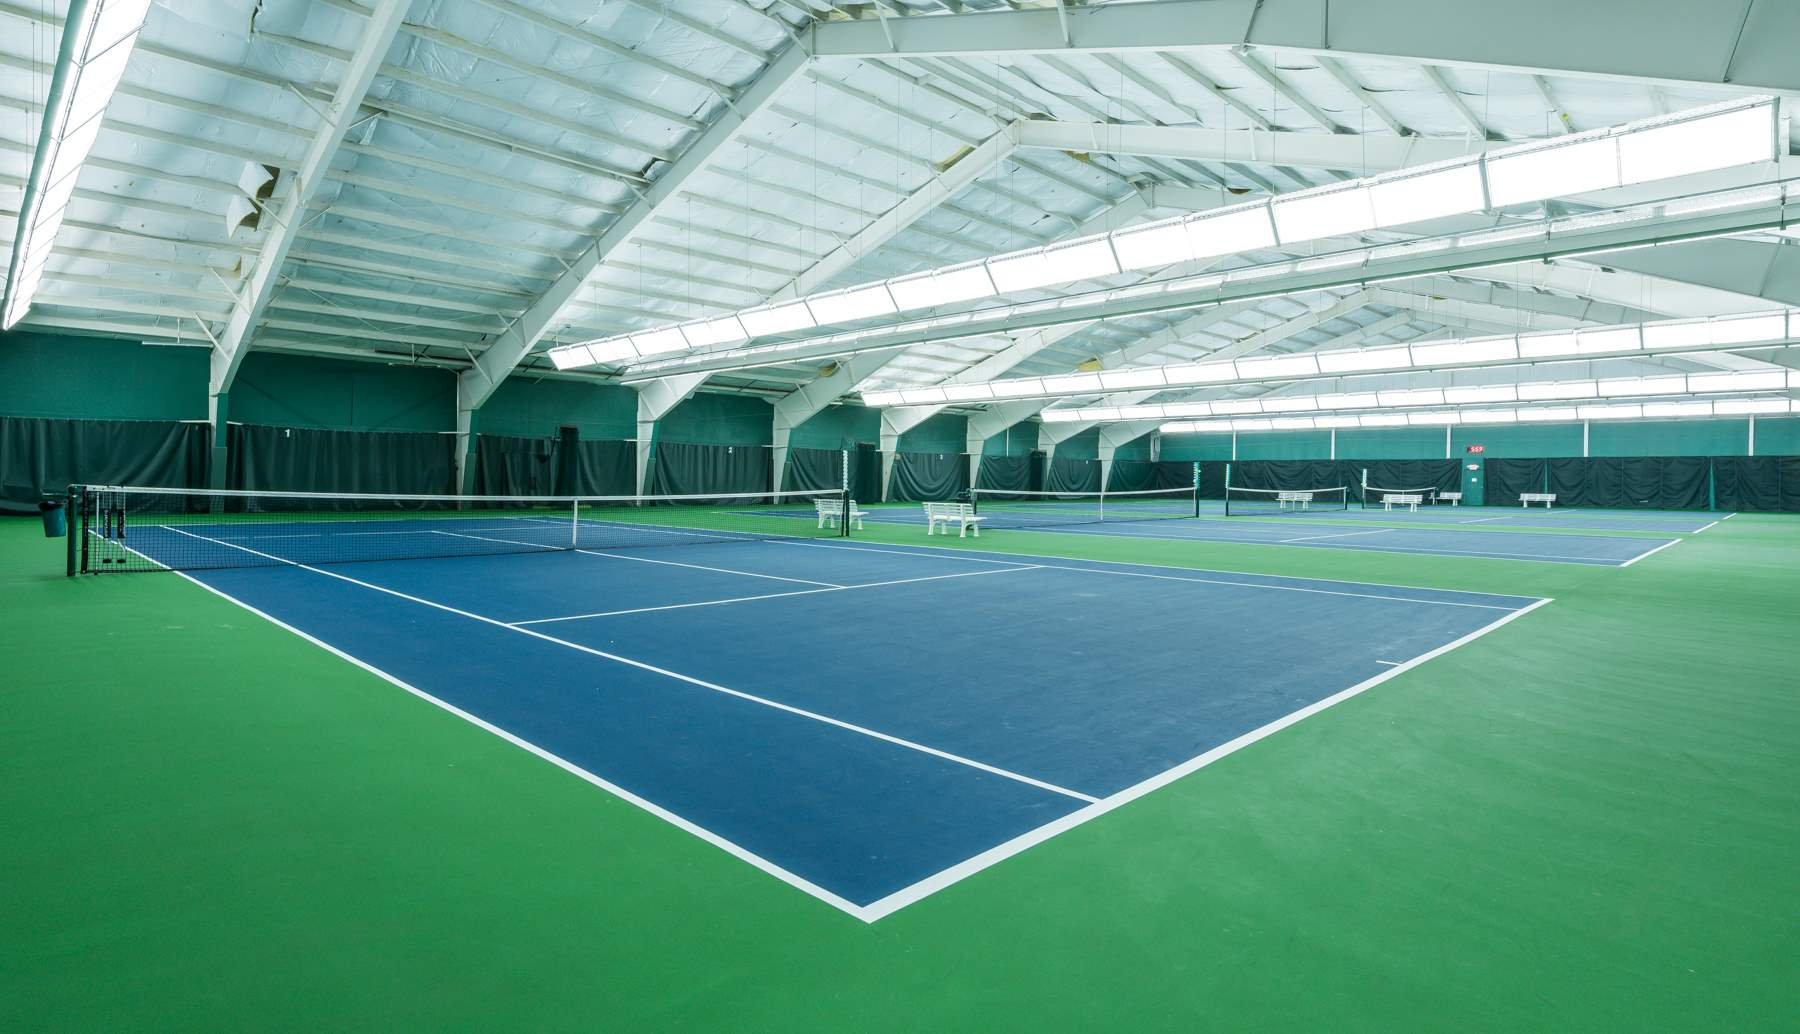 Tennis_Courts_Low_Resolution